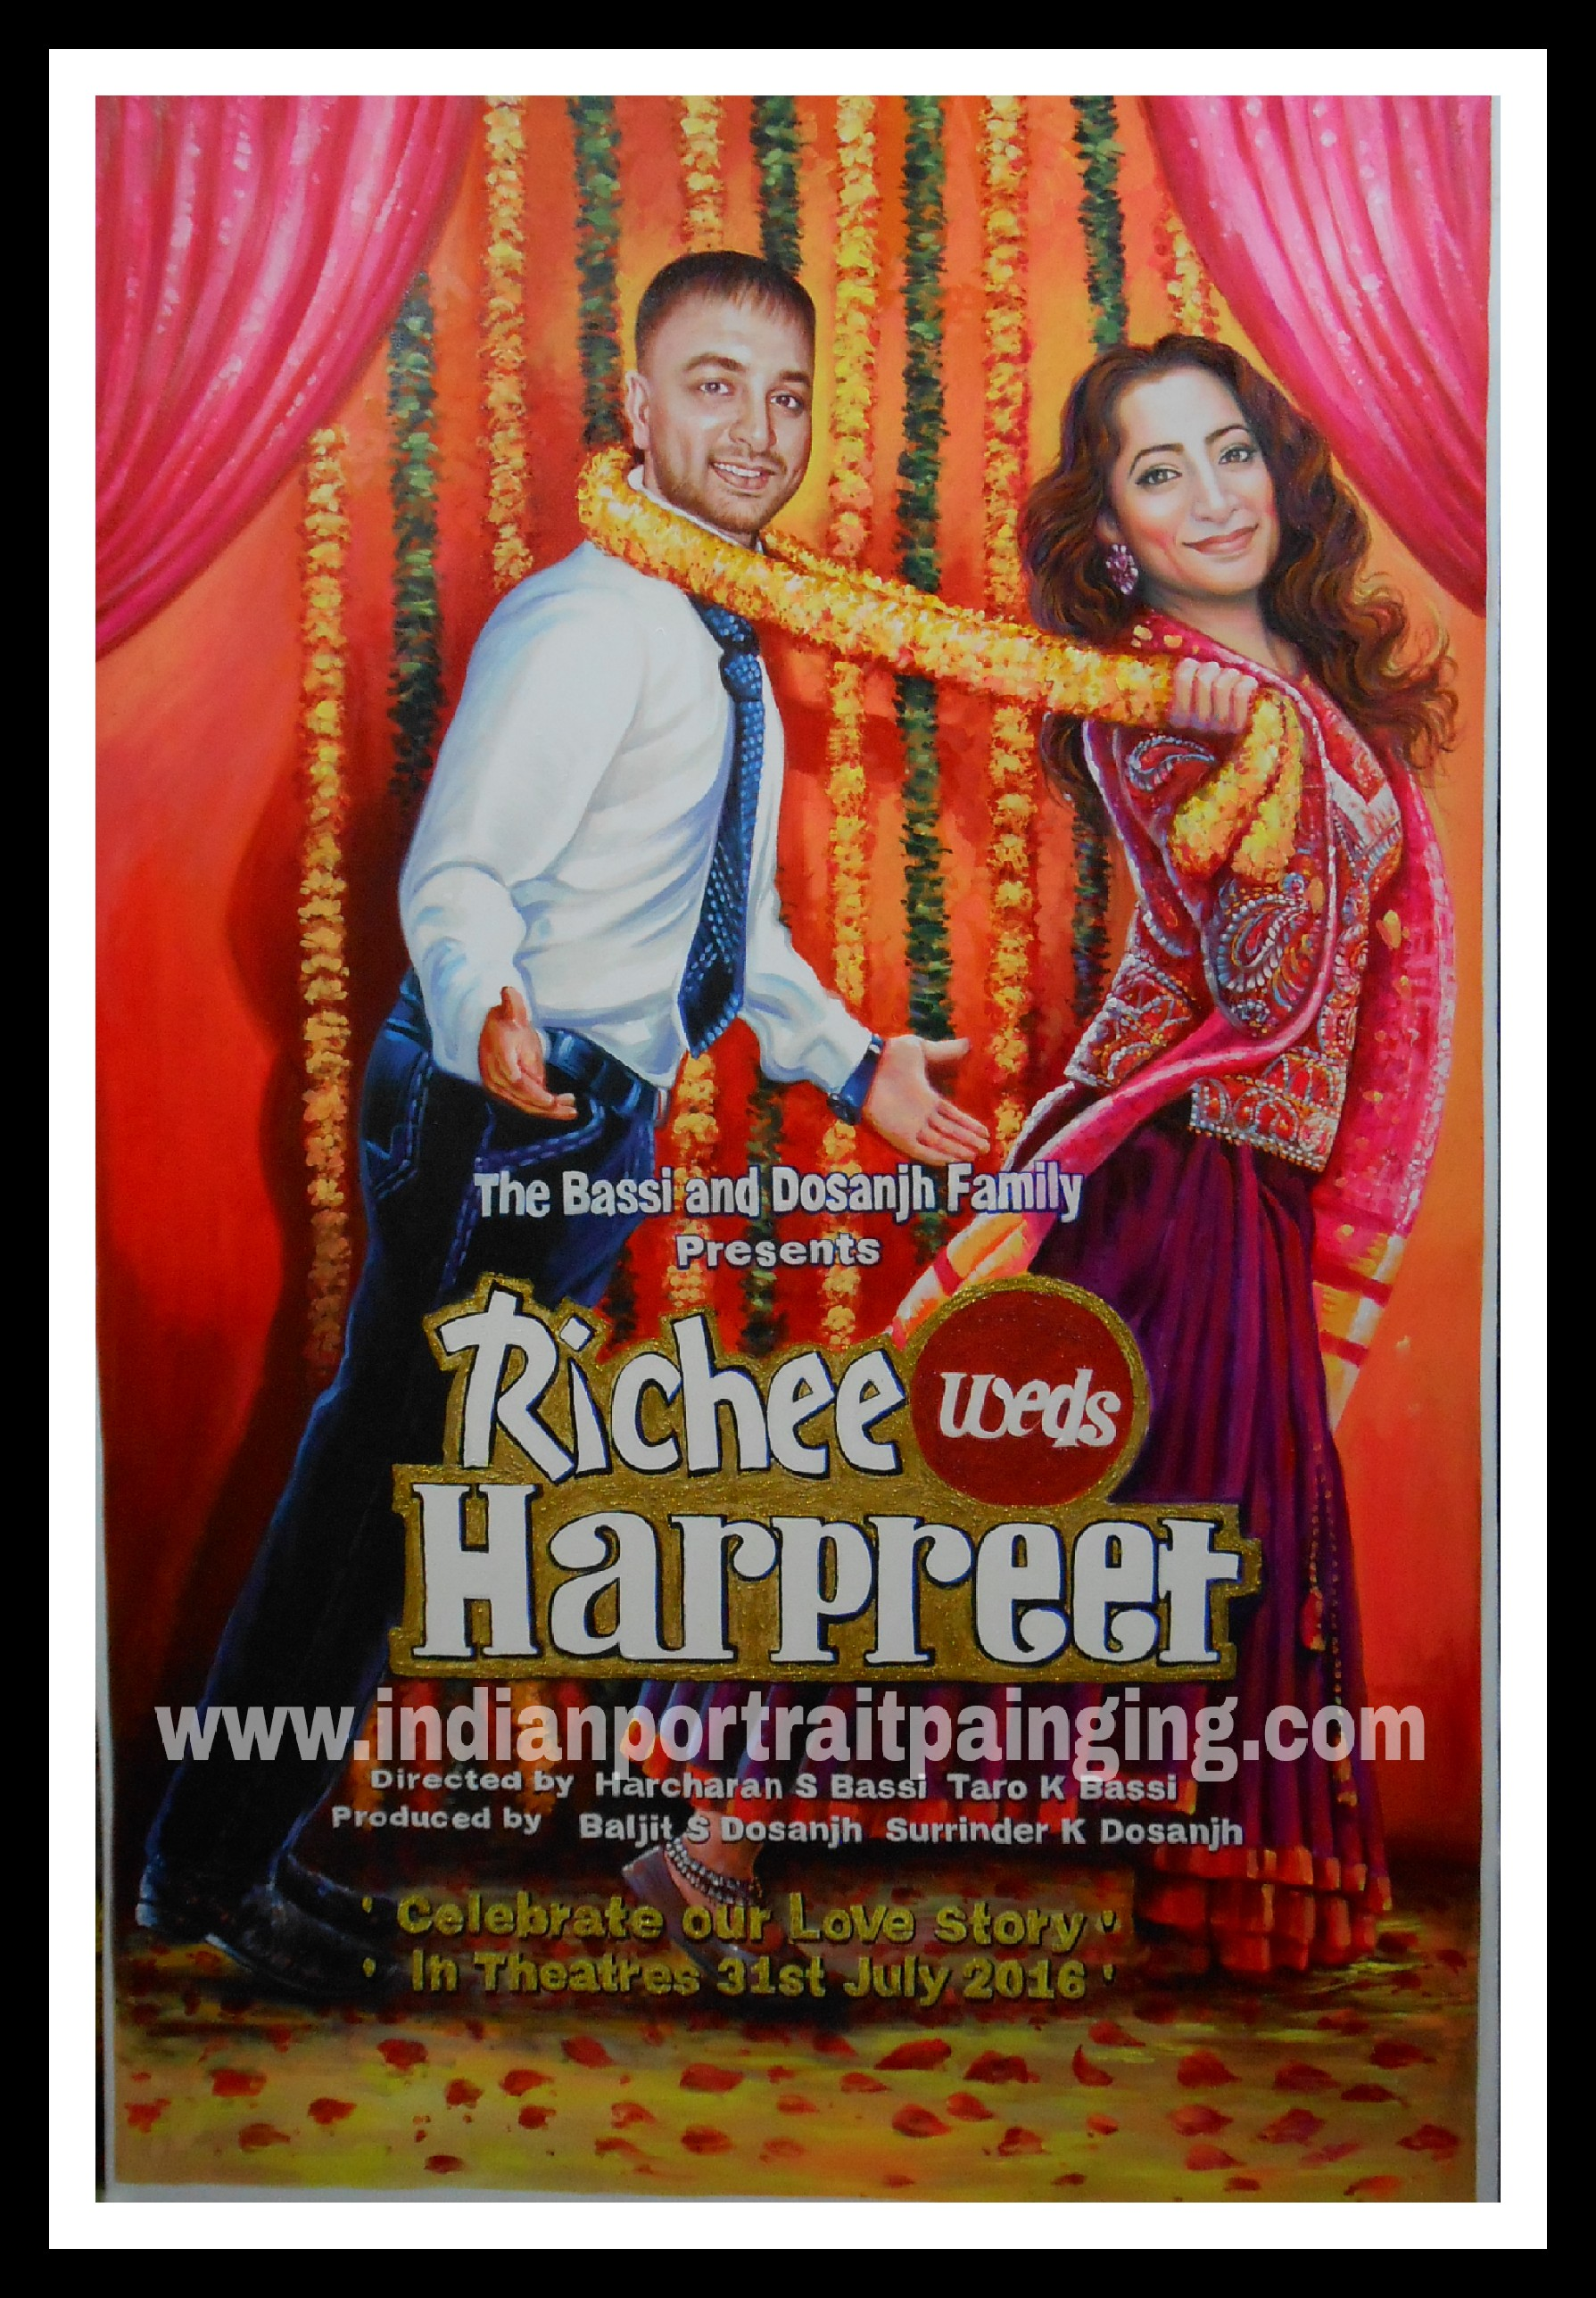 Bollywood themed wedding decor posters – Oil Canvas portrait